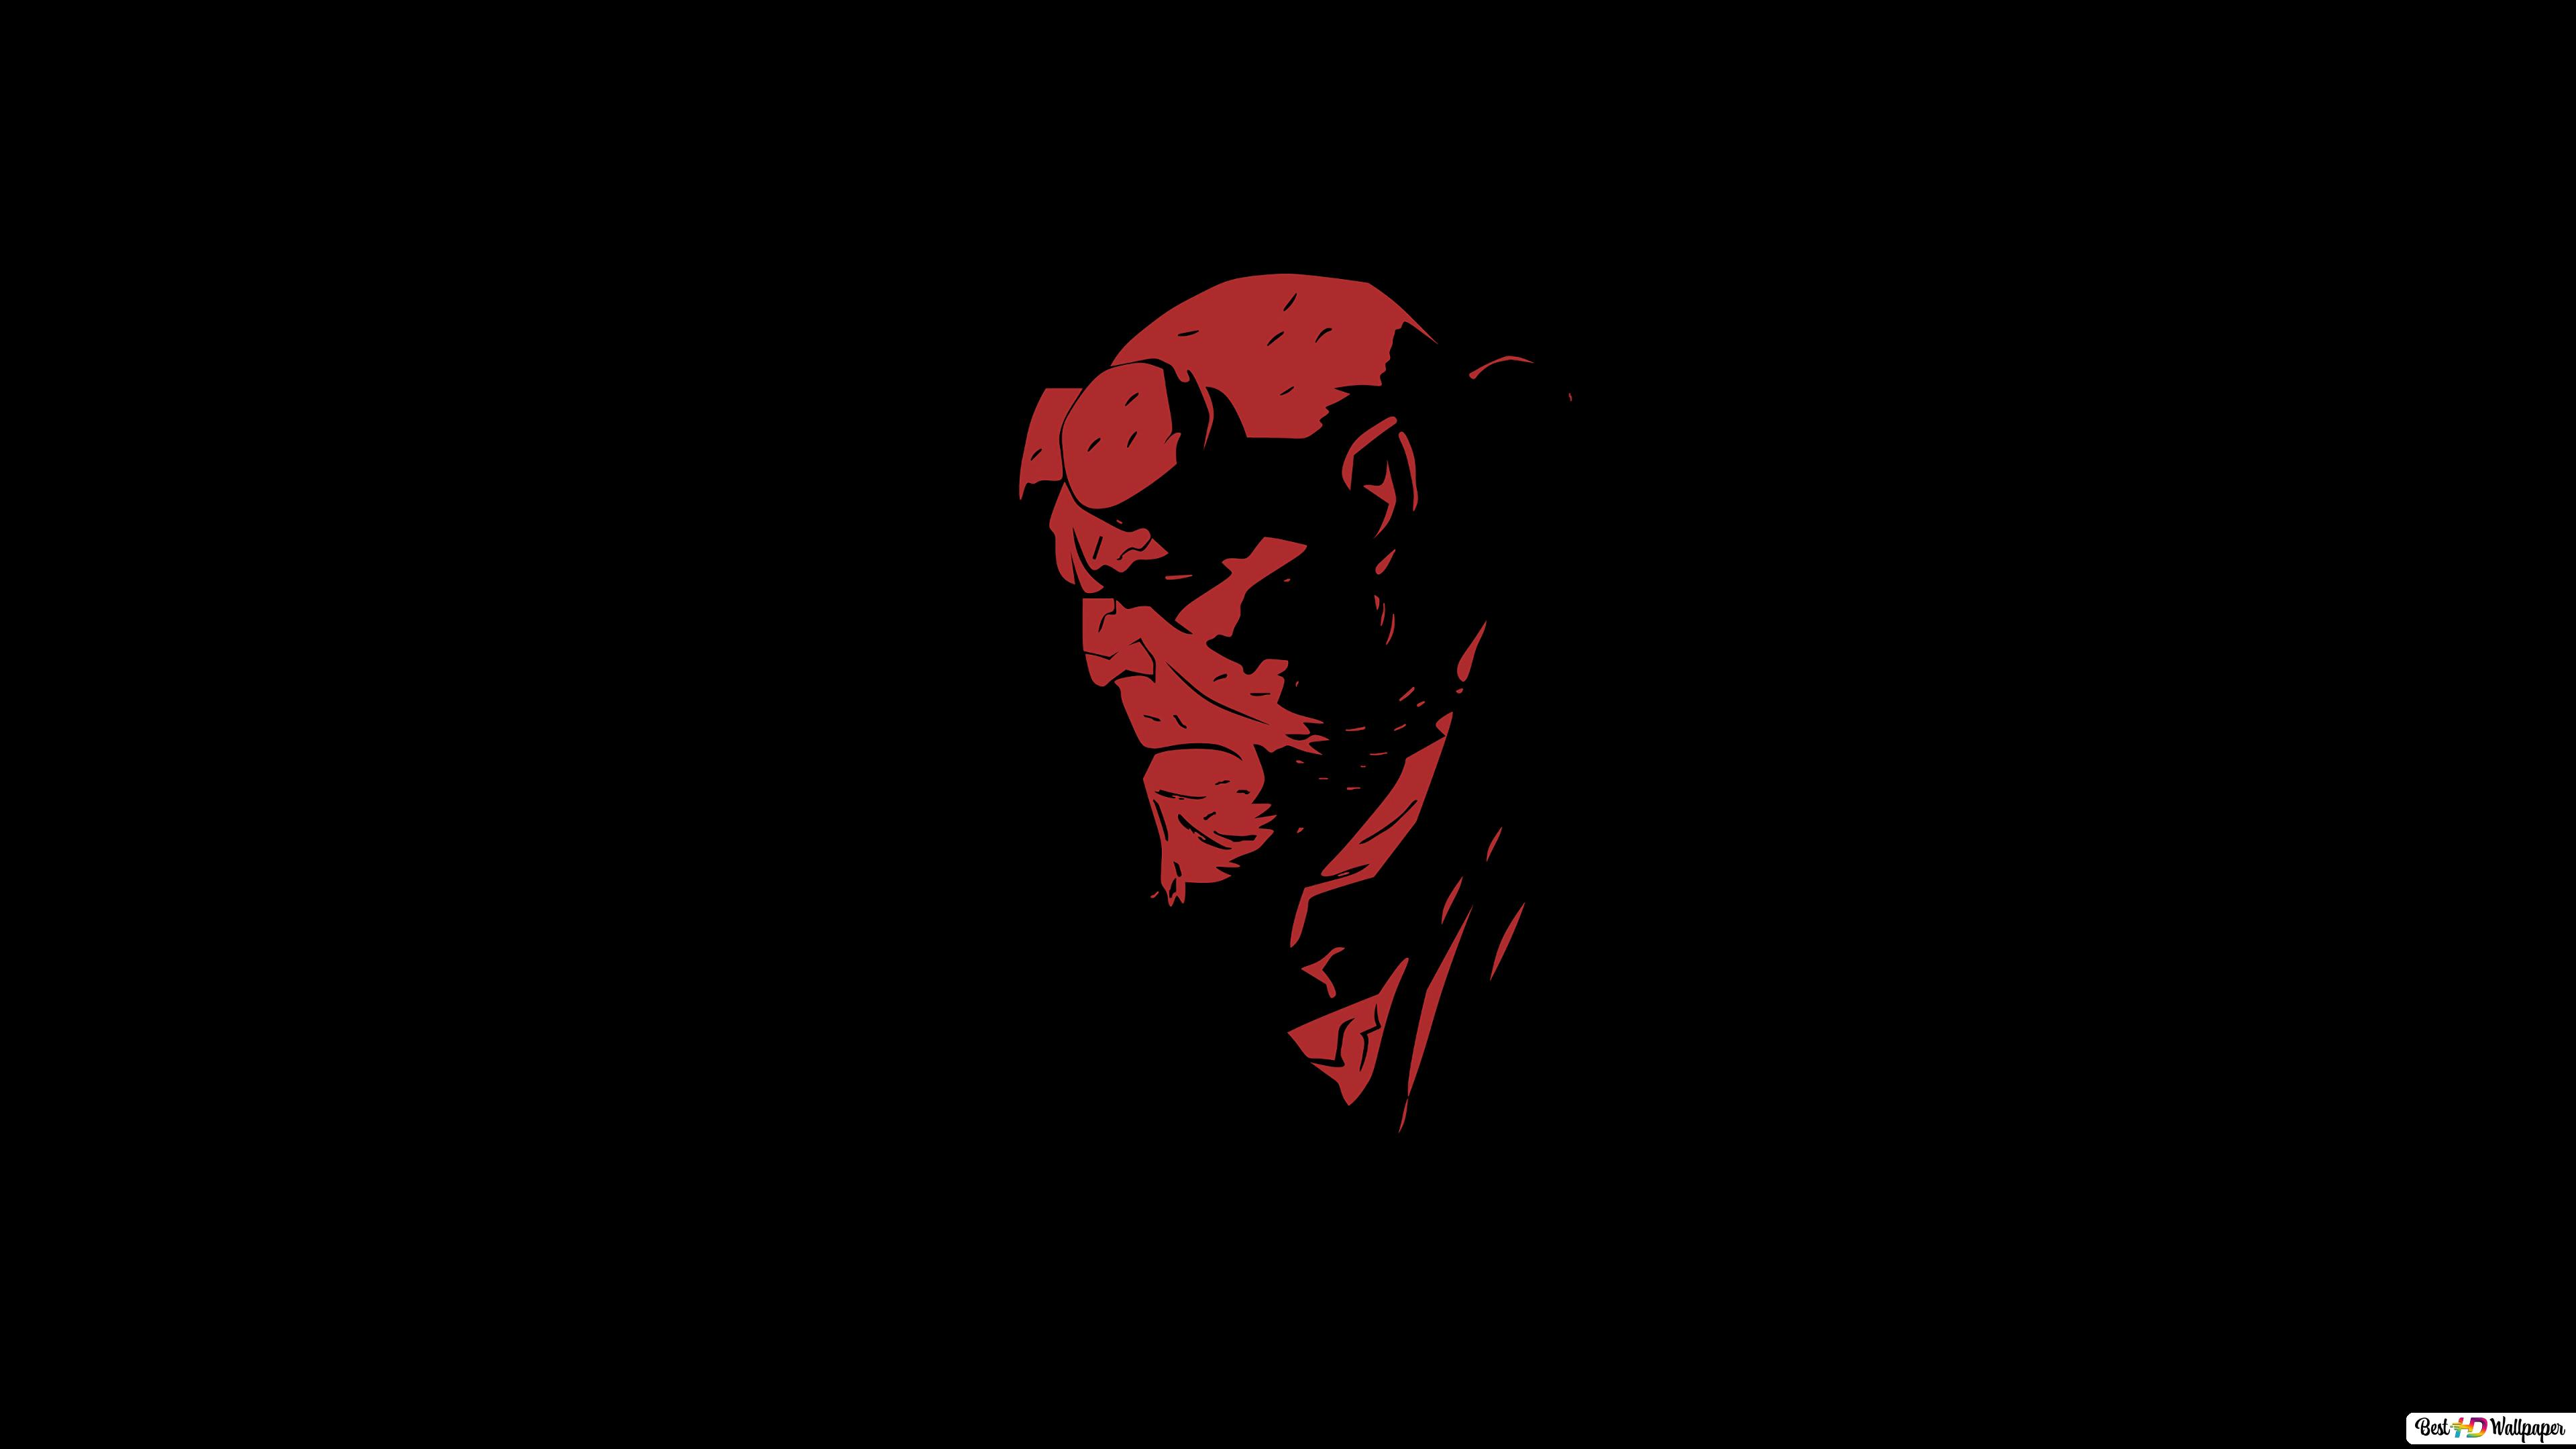 Hellboy Red And Black Minimalist Hd Wallpaper Download